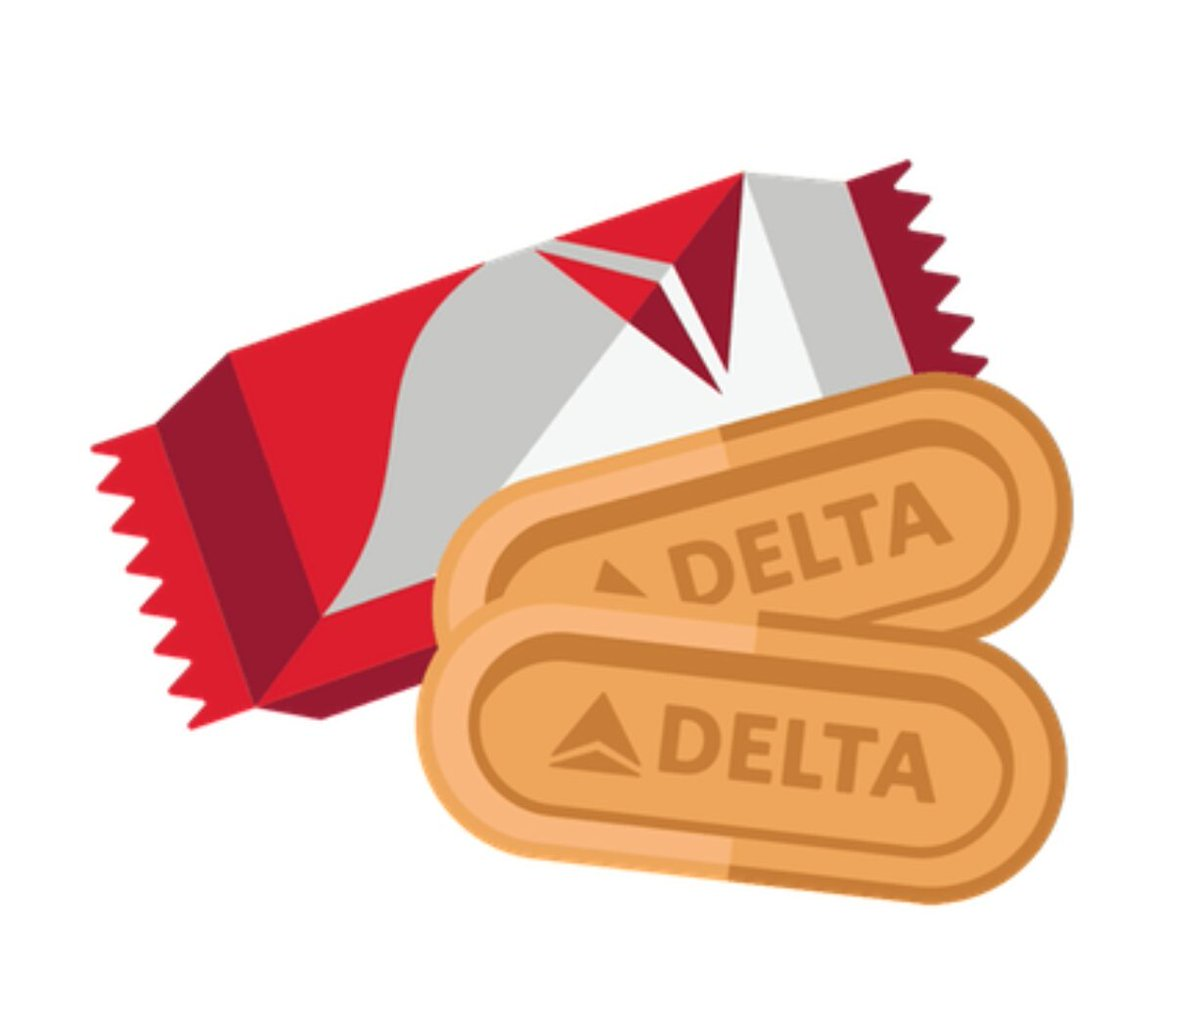 RT @lotusbiscoff: Absolutely in love with our very own #Biscoff emoji for #WorldEmojiDay ❤ @Delta https://t.co/Wpvbz8Hqu9